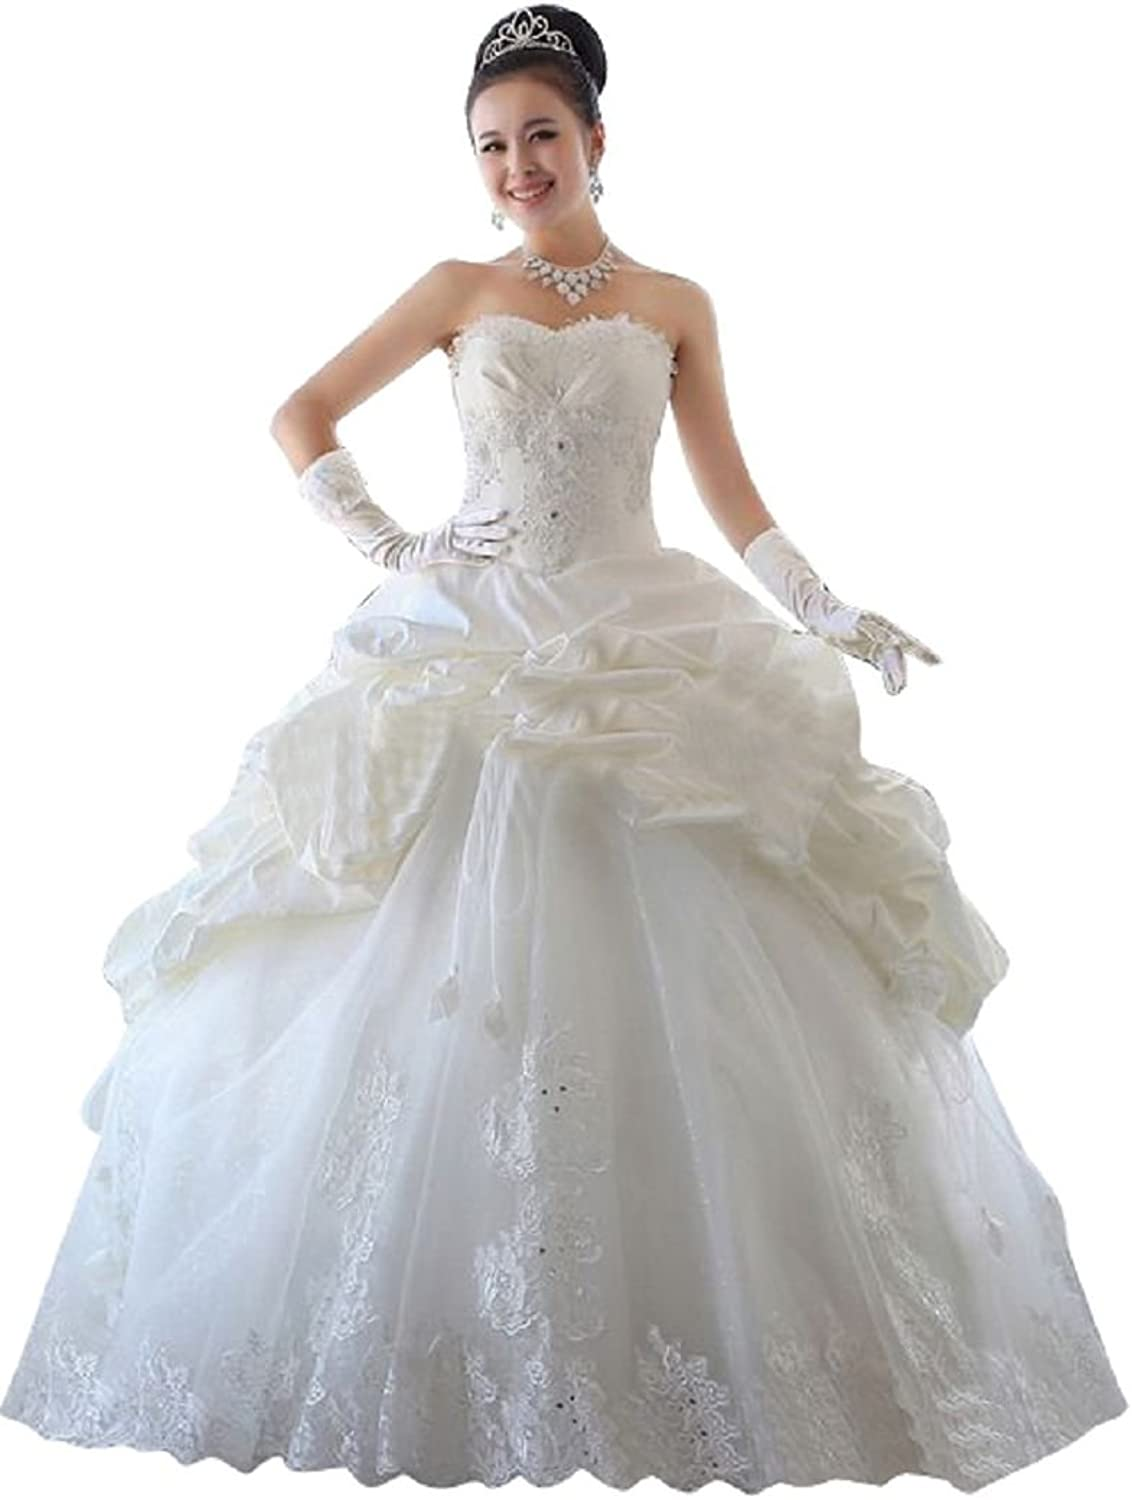 BeautyEmily Strapless Bridal Wedding Dress Princess Lace Prom Formal Ball Gown